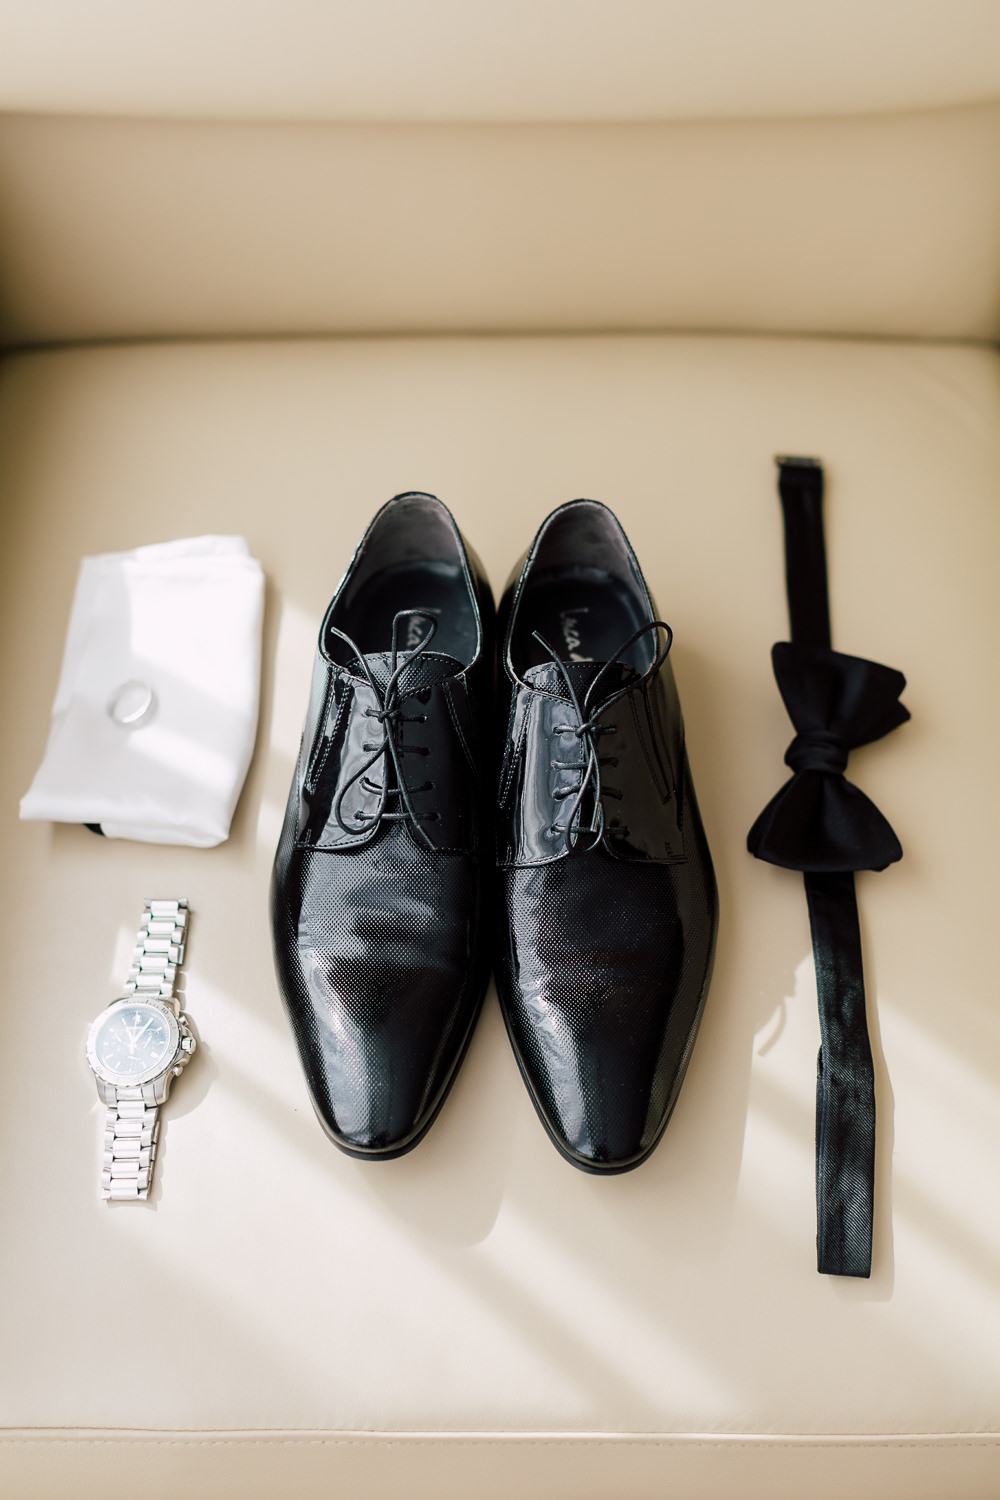 groom's formal attire